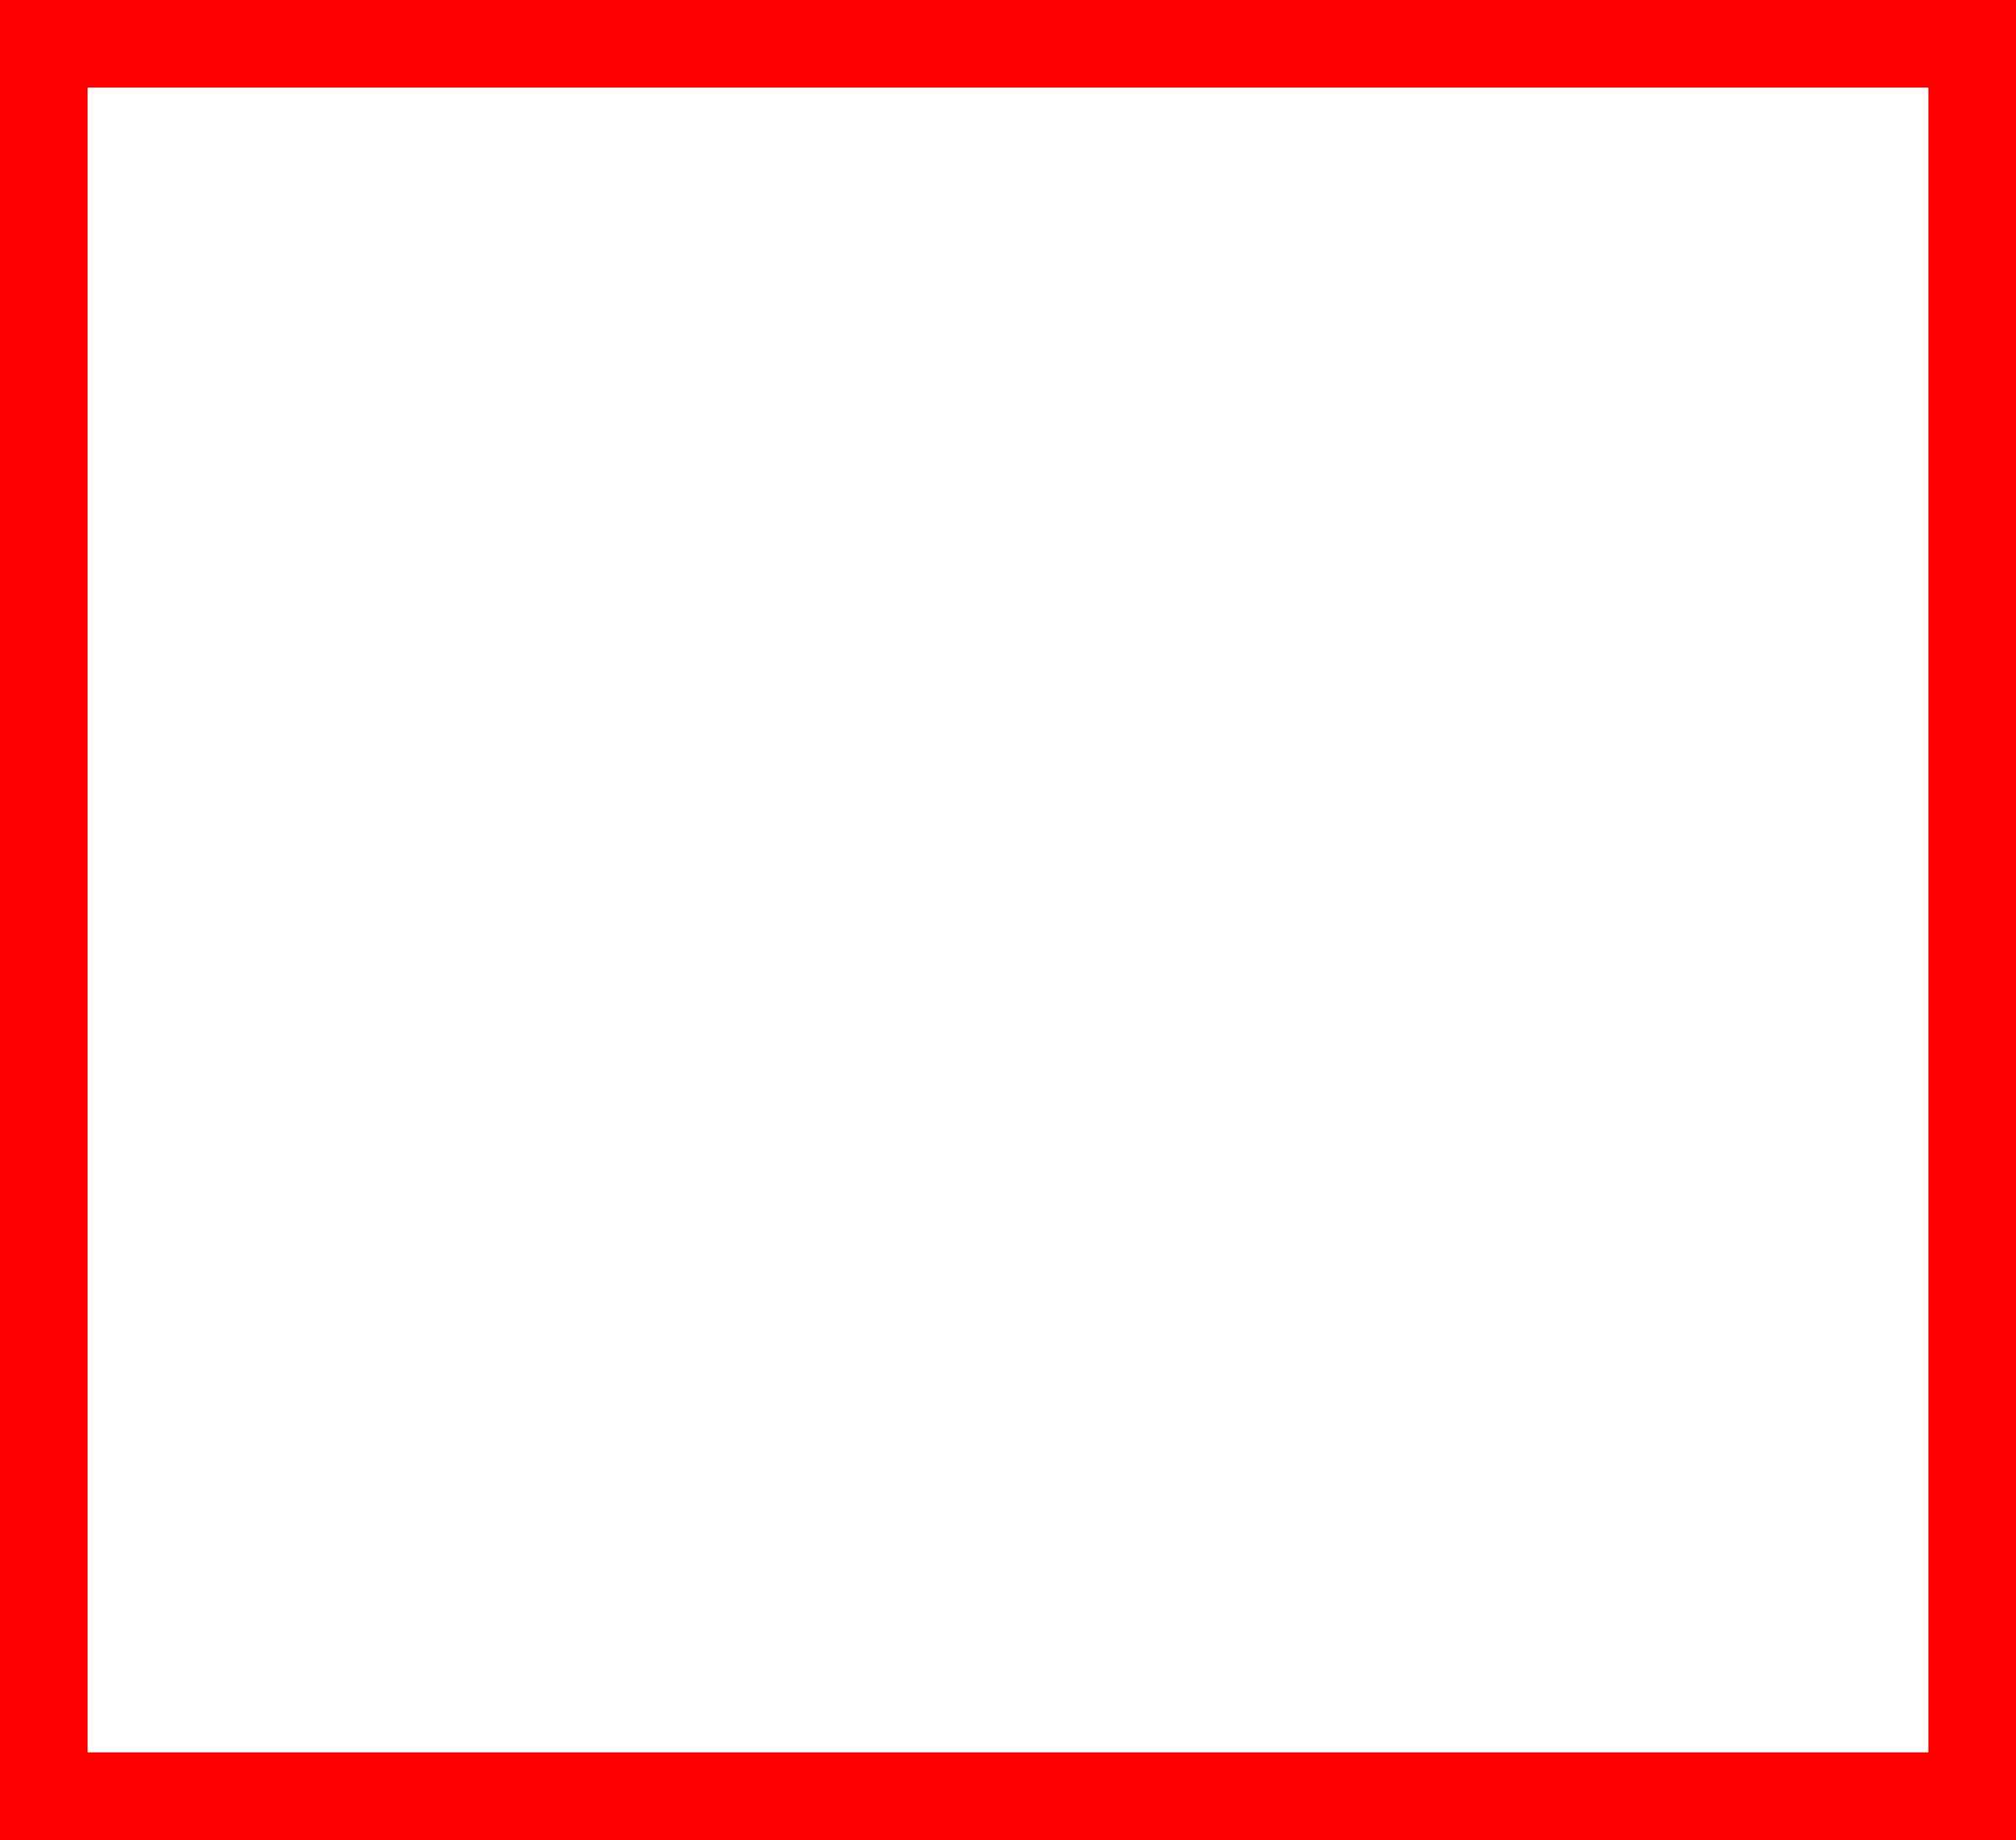 Square png image. Simple red icons free